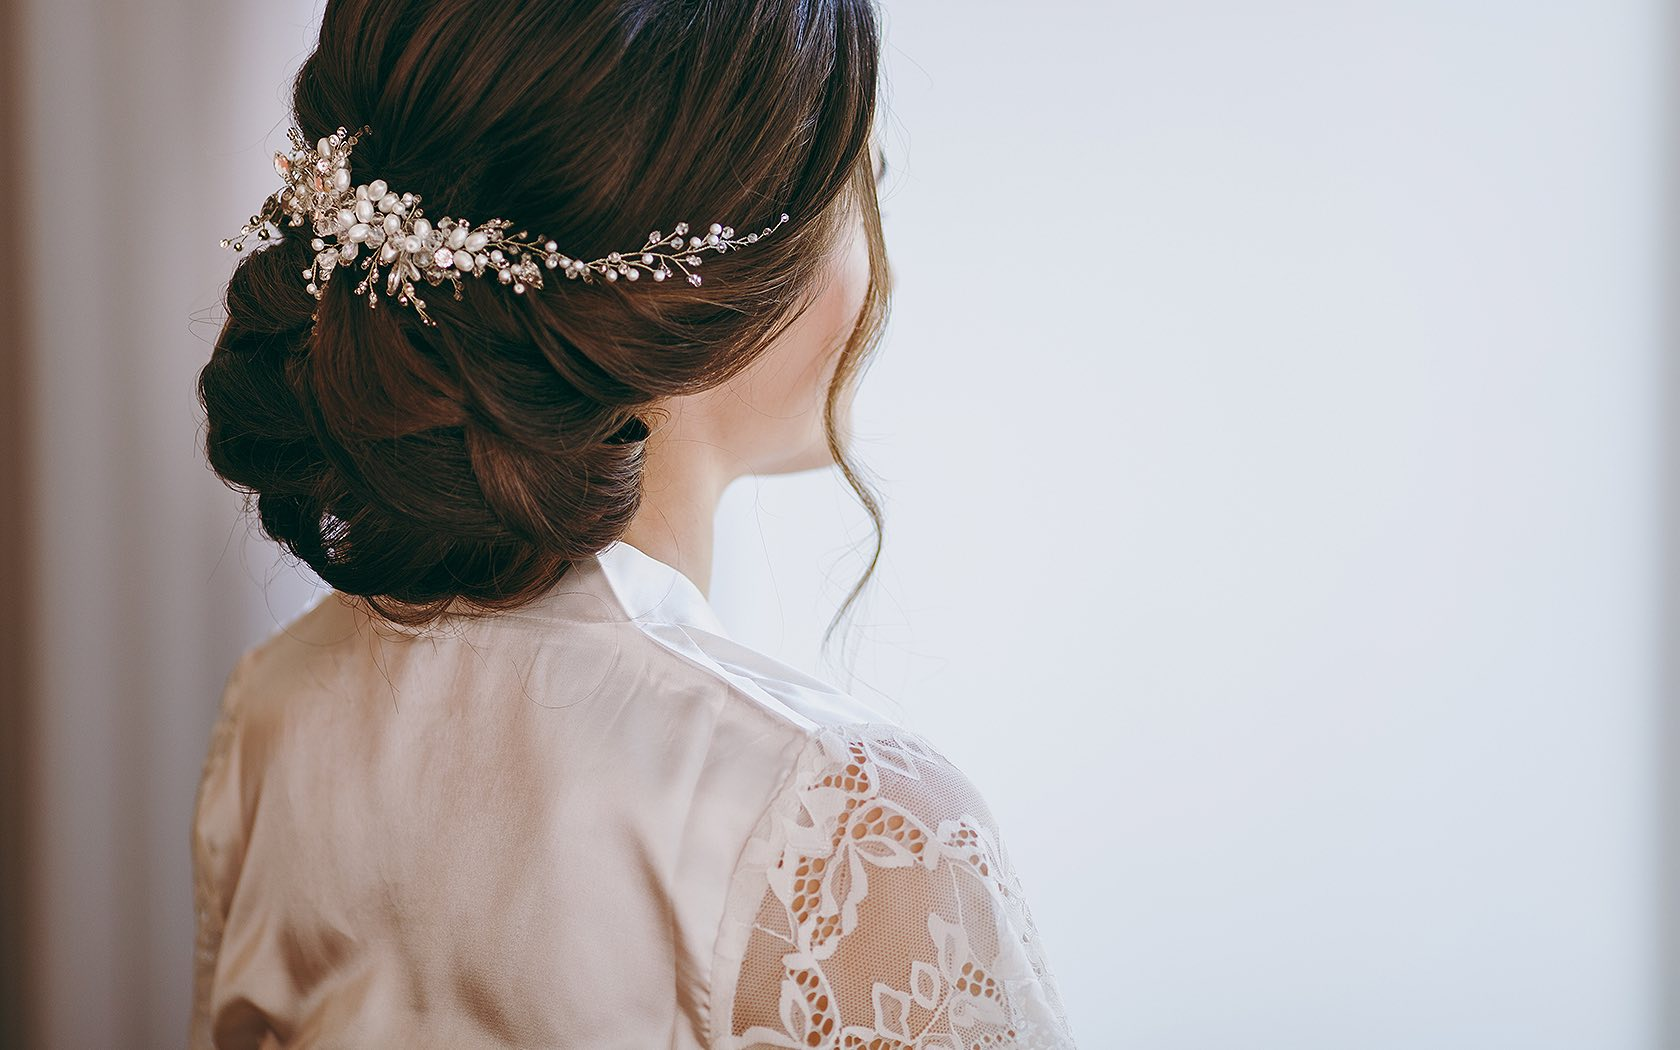 view of bride from behind the shoulder with hair in braids and curl down side of face